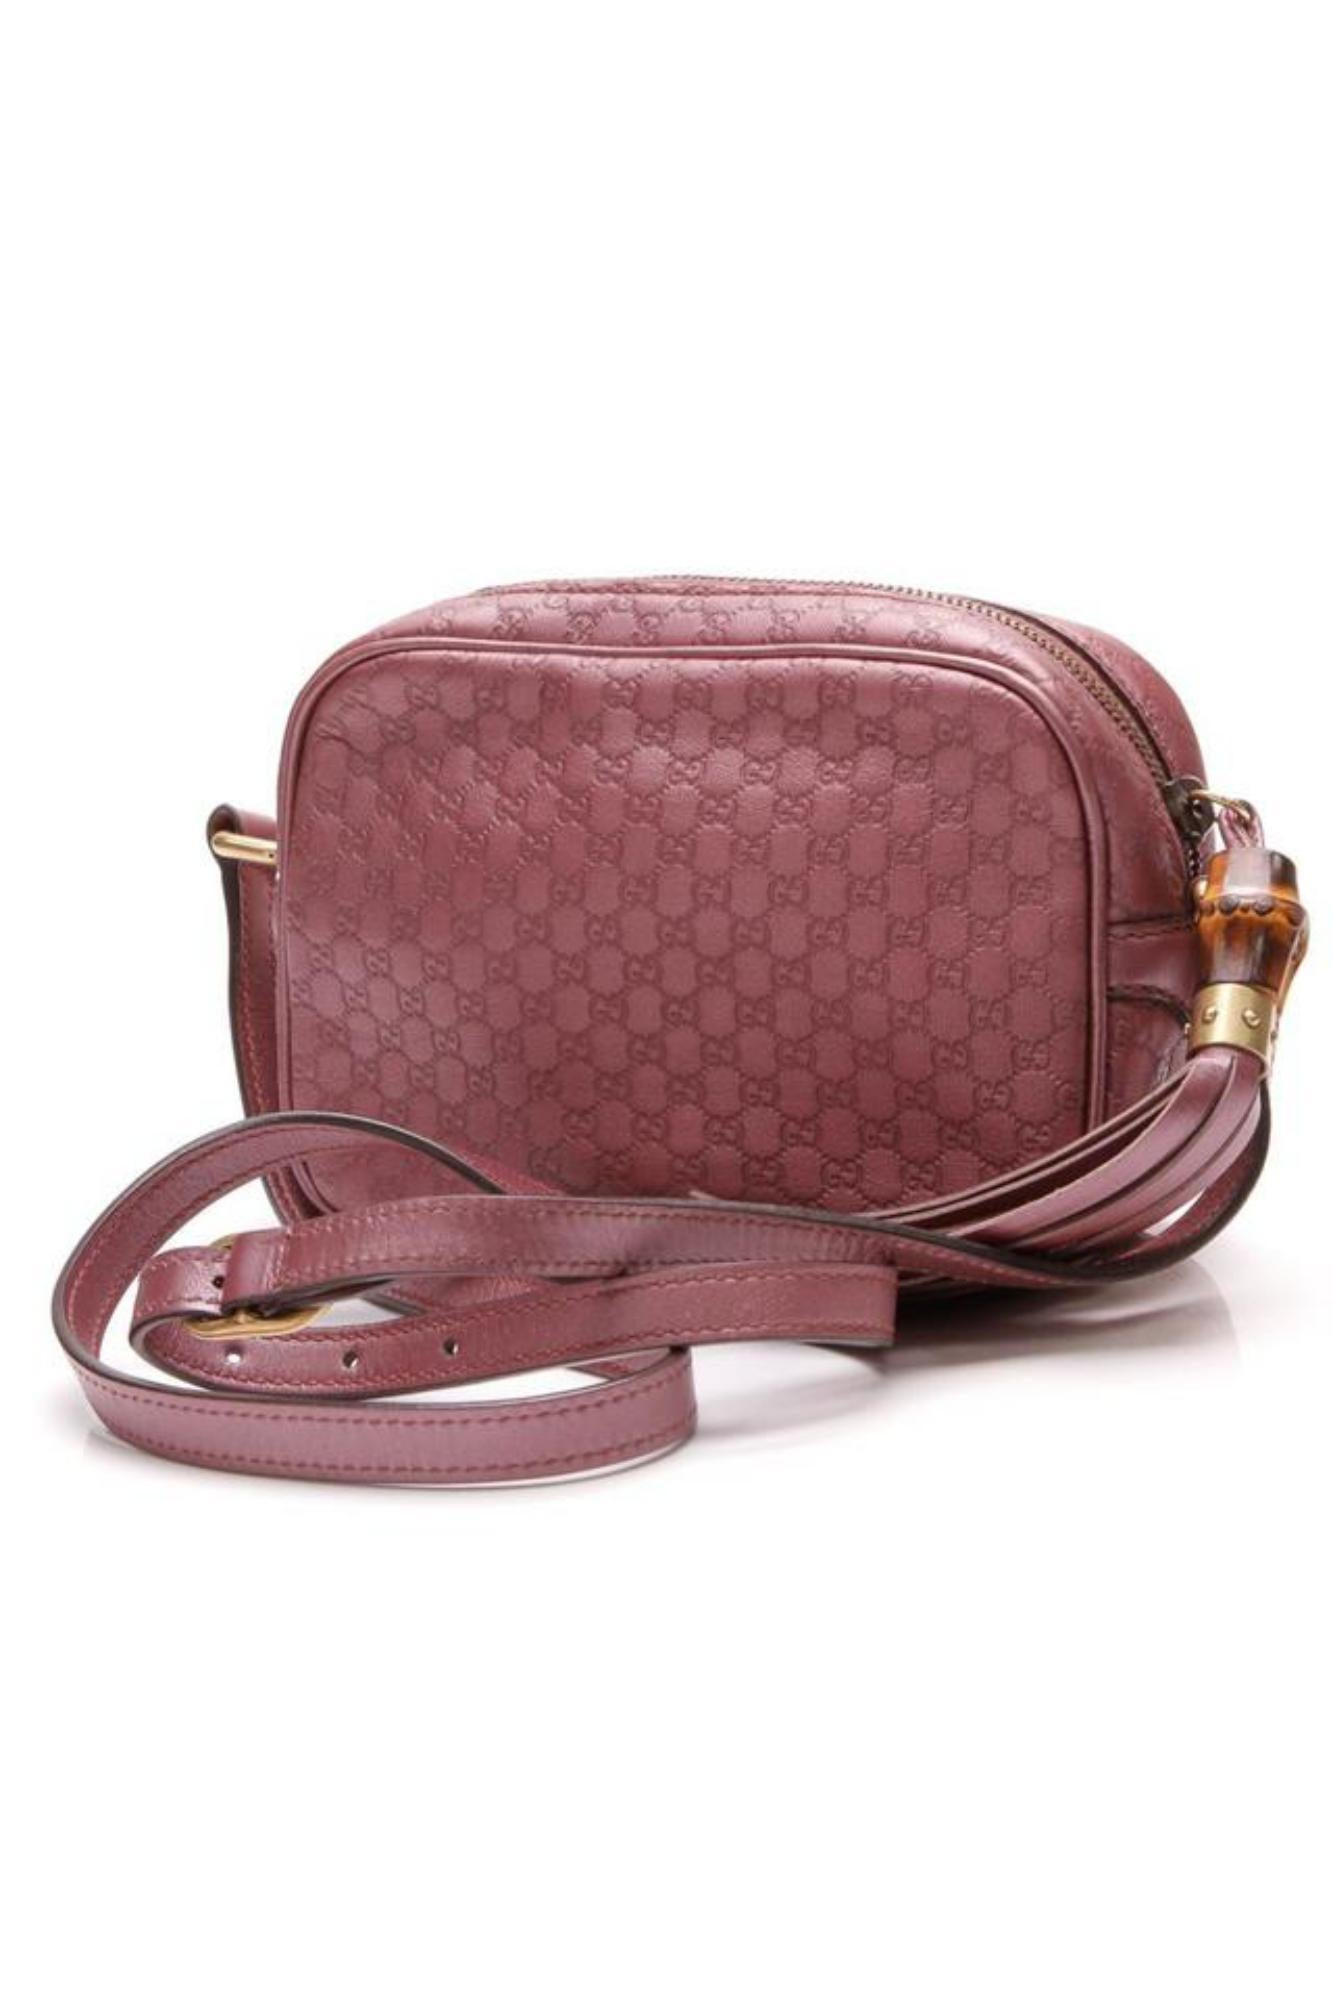 a3e46278075 Gucci Soho Guccissima Sunshine Disco 866100 Rose (Pink) Leather Cross Body  Bag For Sale at 1stdibs